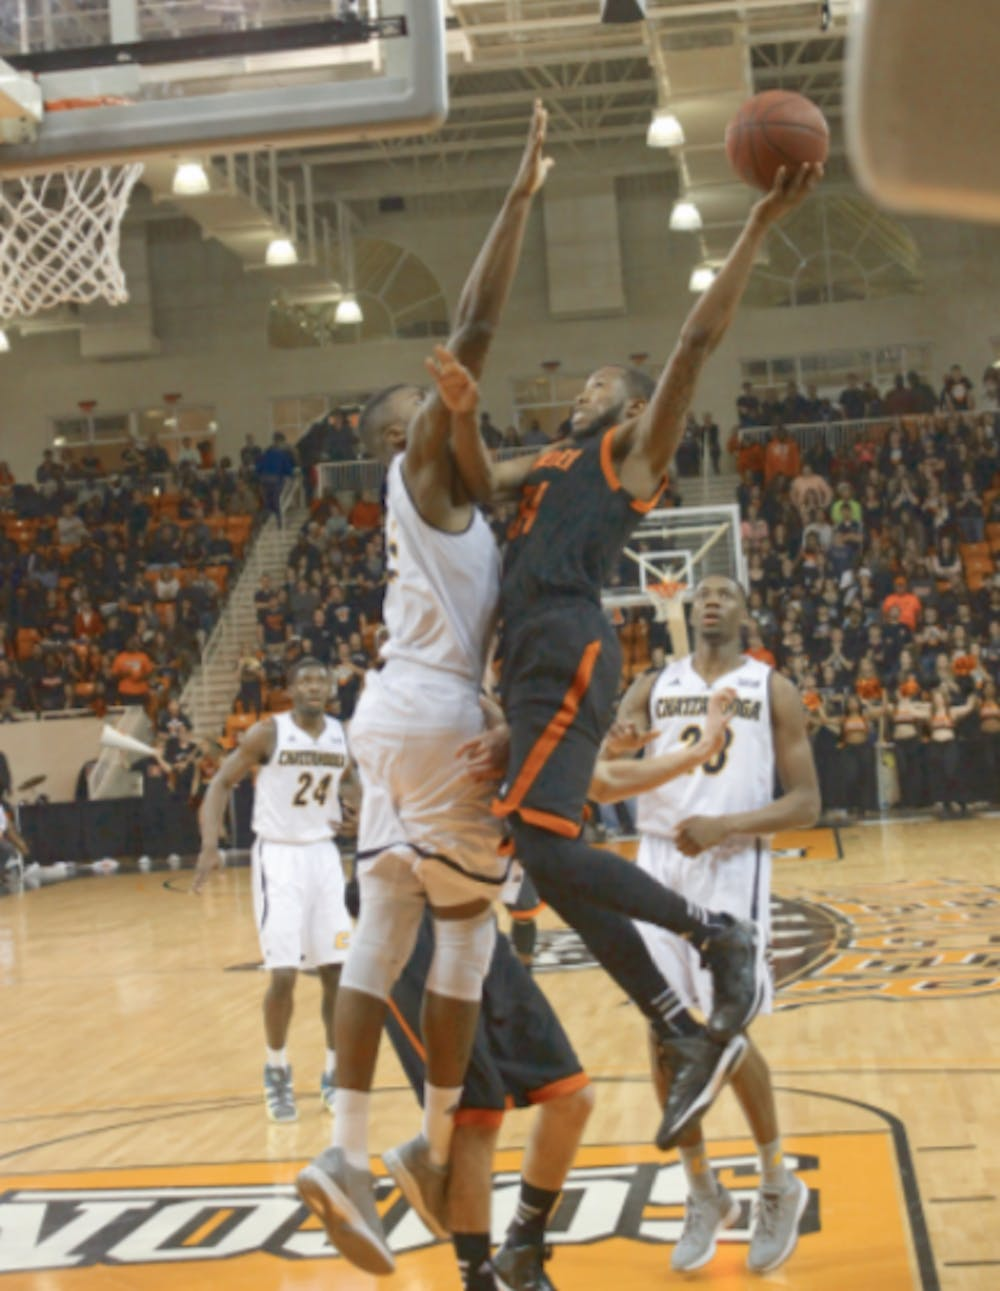 Jibri Bryan goes up against a defender in the Bears' game against the Chattanooga Mocs, February 2015.